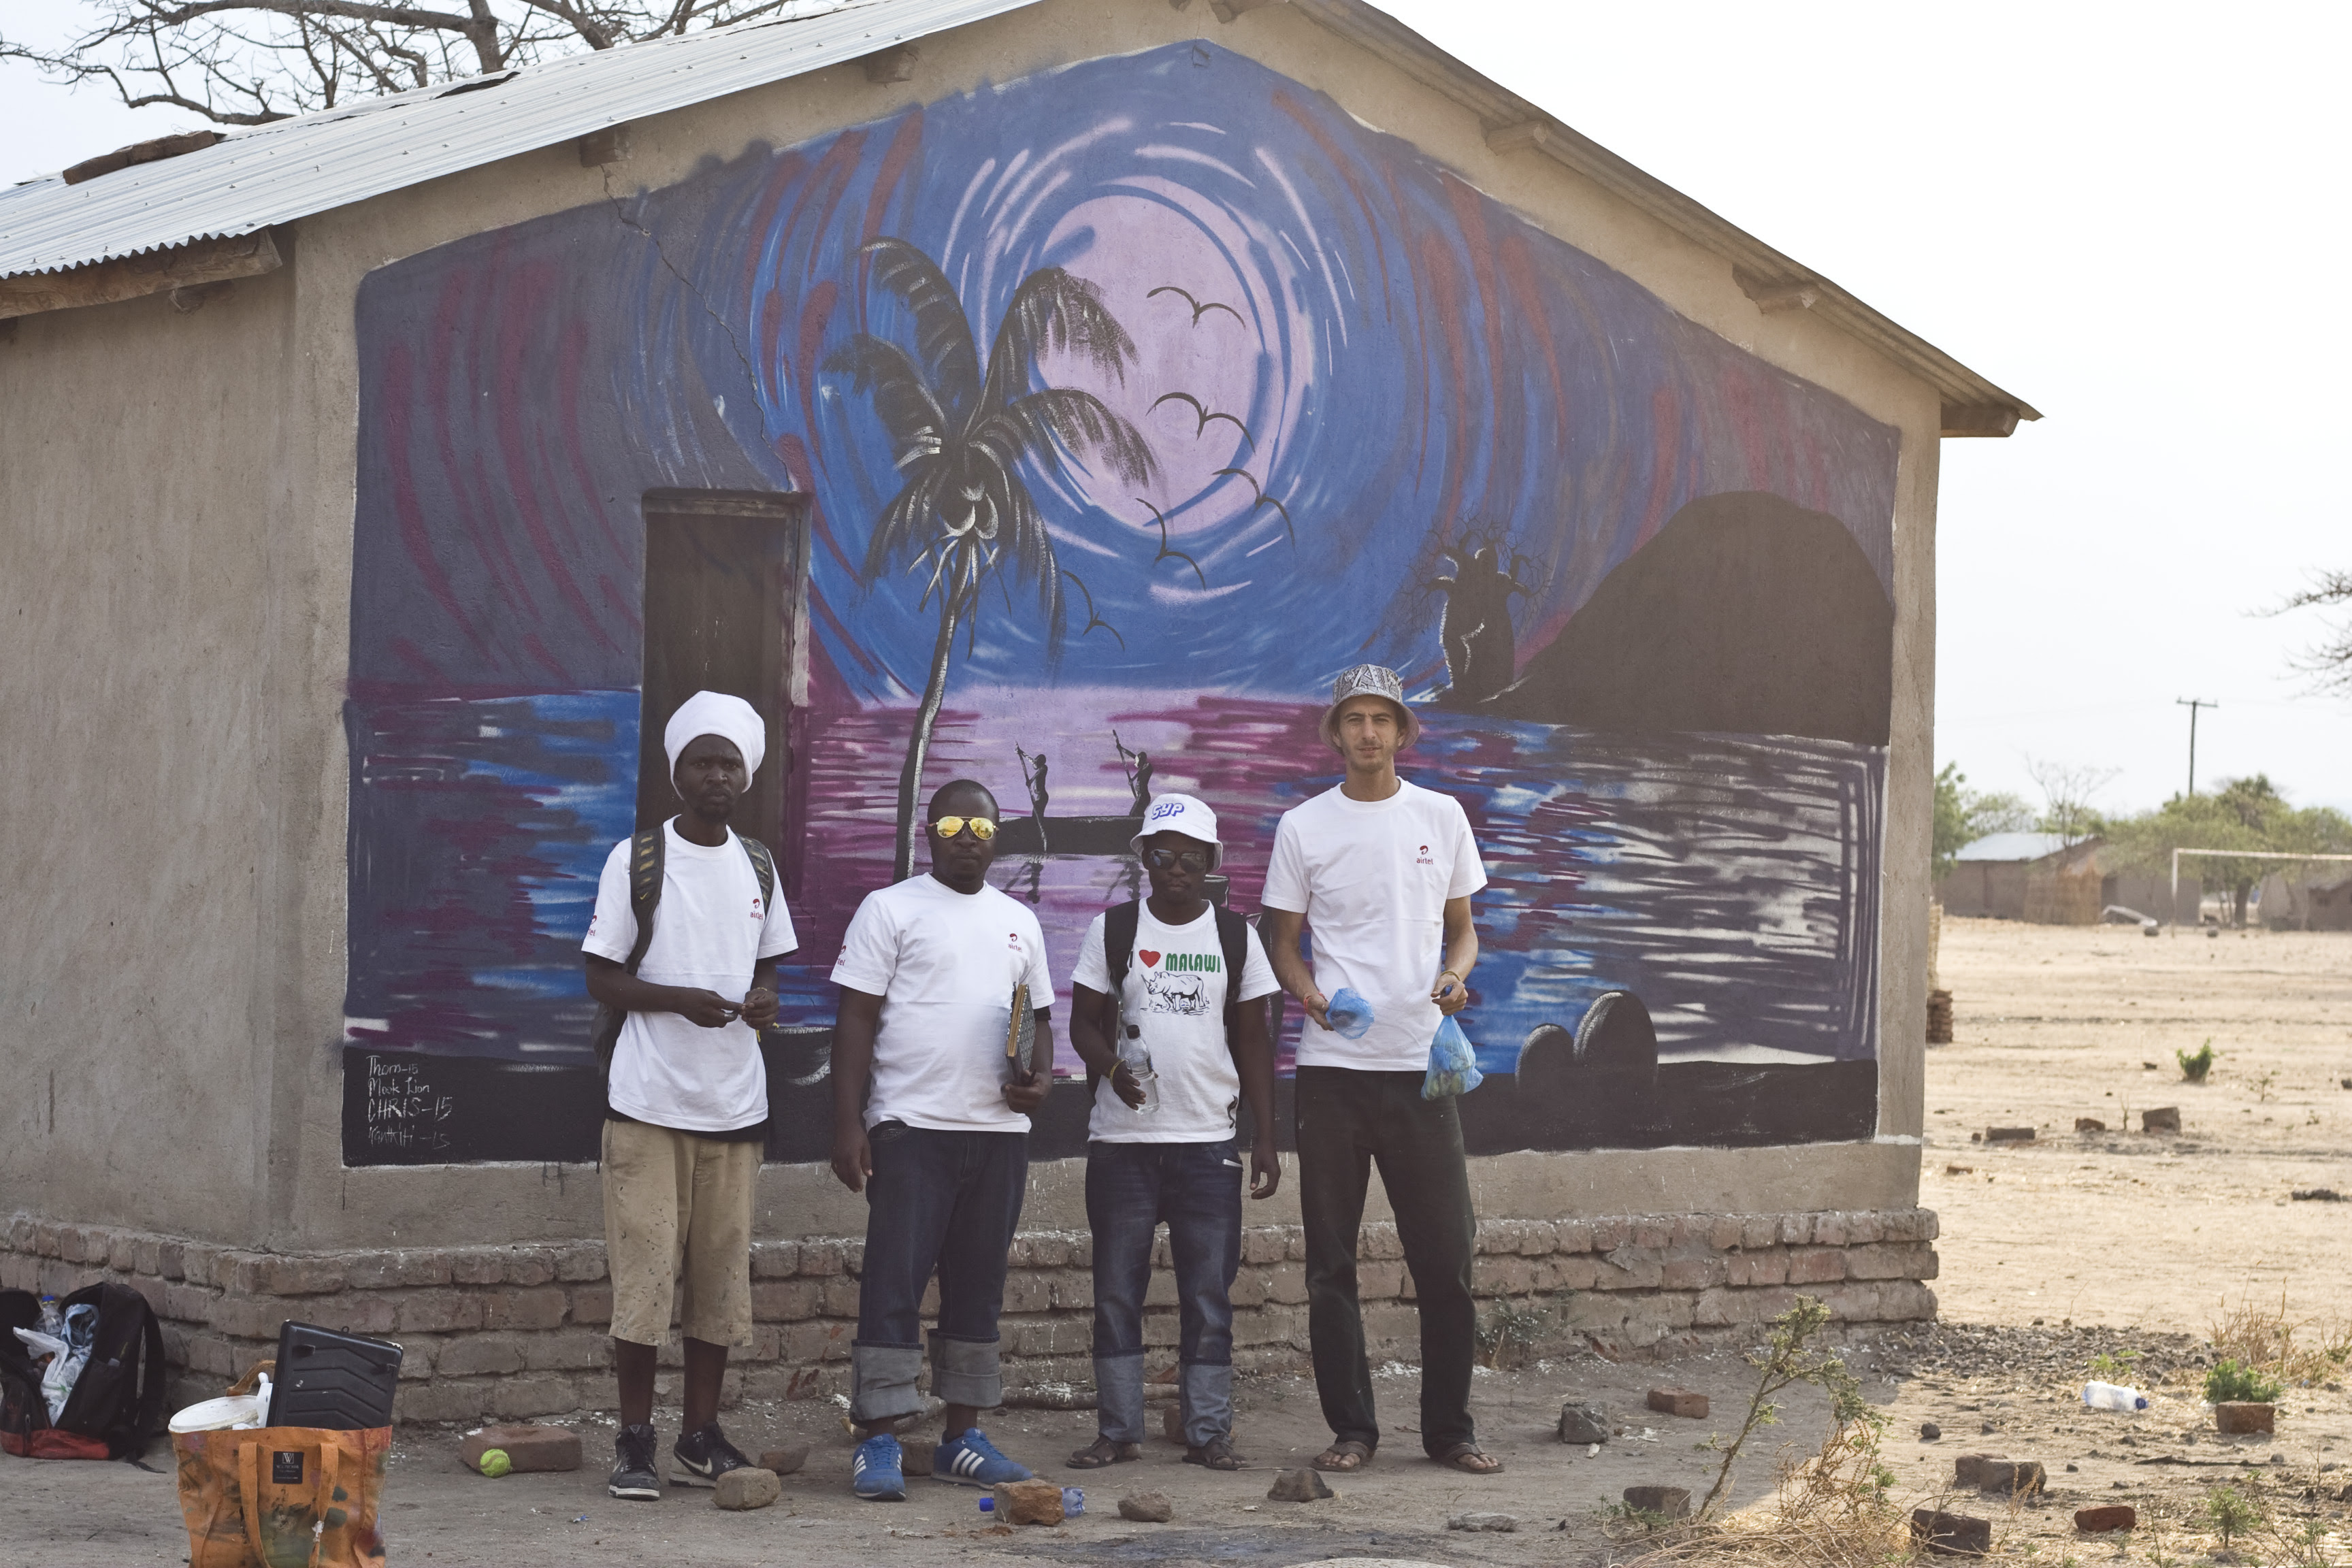 Africa Mural Art In Malawi With Mook Lion Graffiti South Africa